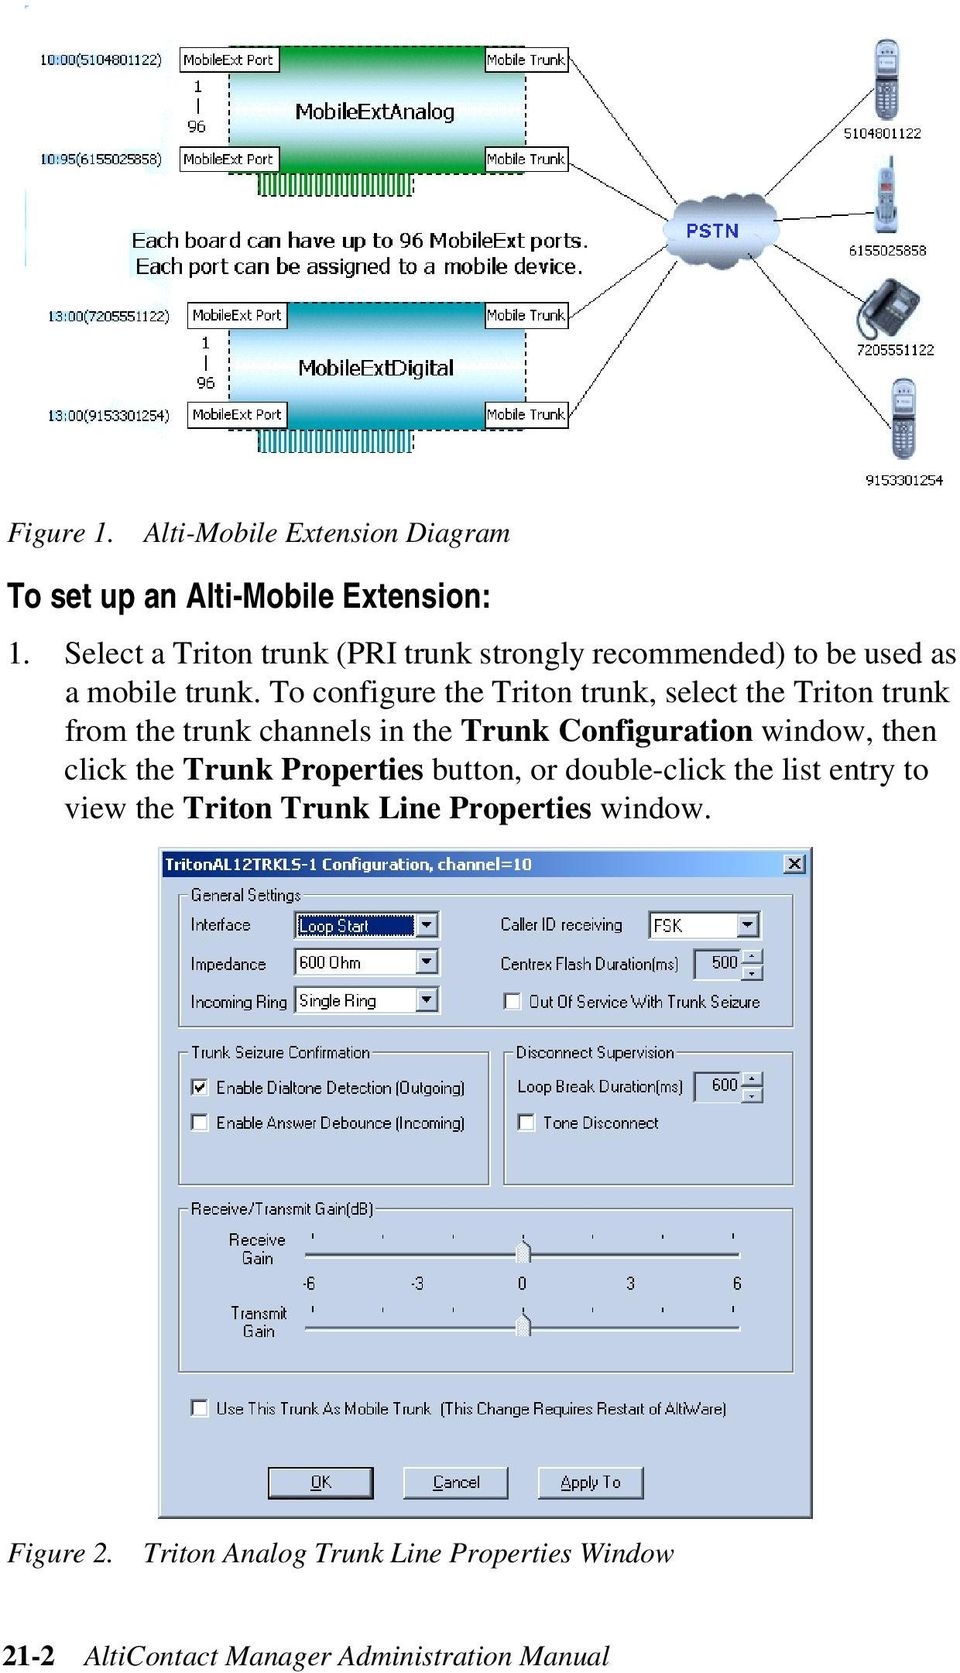 To configure the Triton trunk, select the Triton trunk from the trunk channels in the Trunk Configuration window, then click